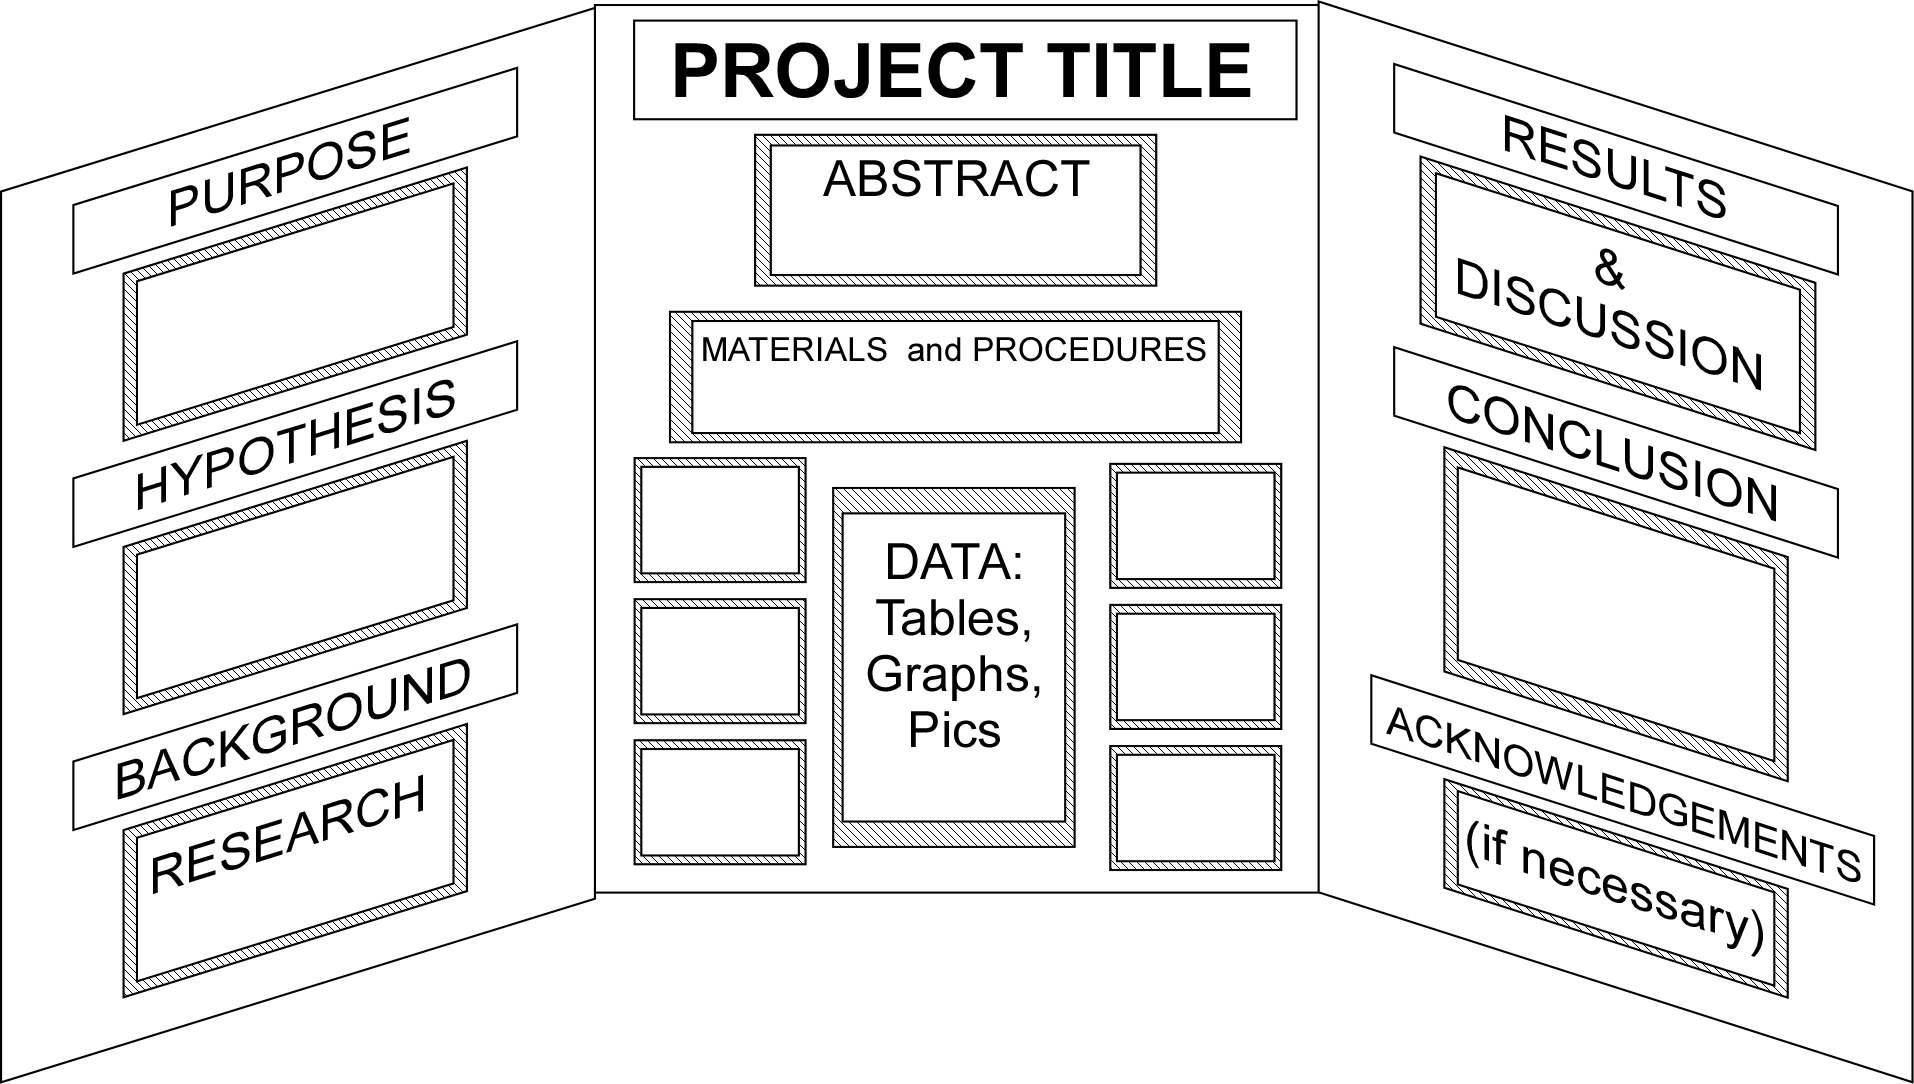 middle school science fair projects display board layout example 4 jpg